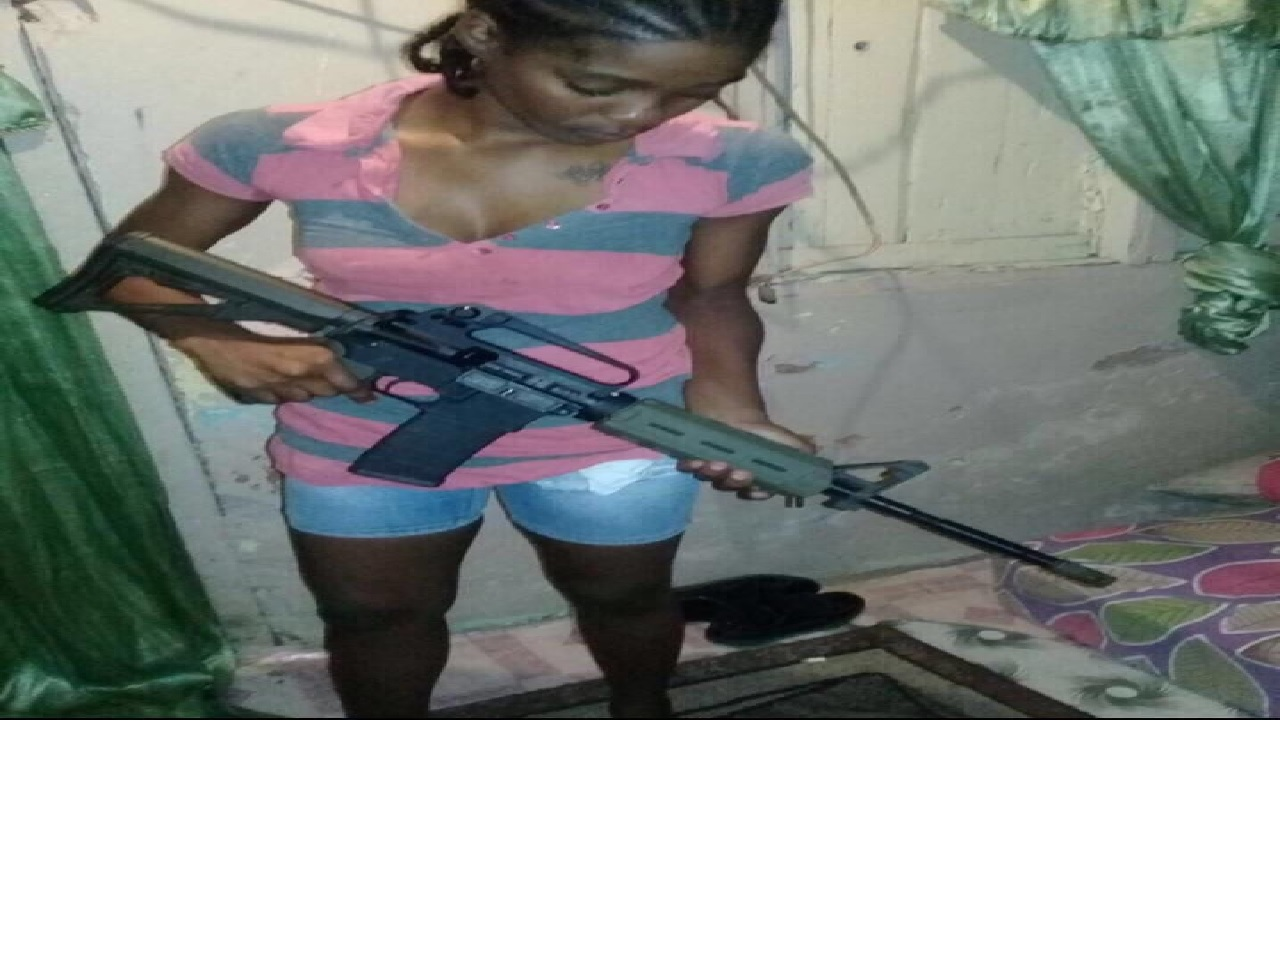 Photo showing the female posing with a high powered rifle